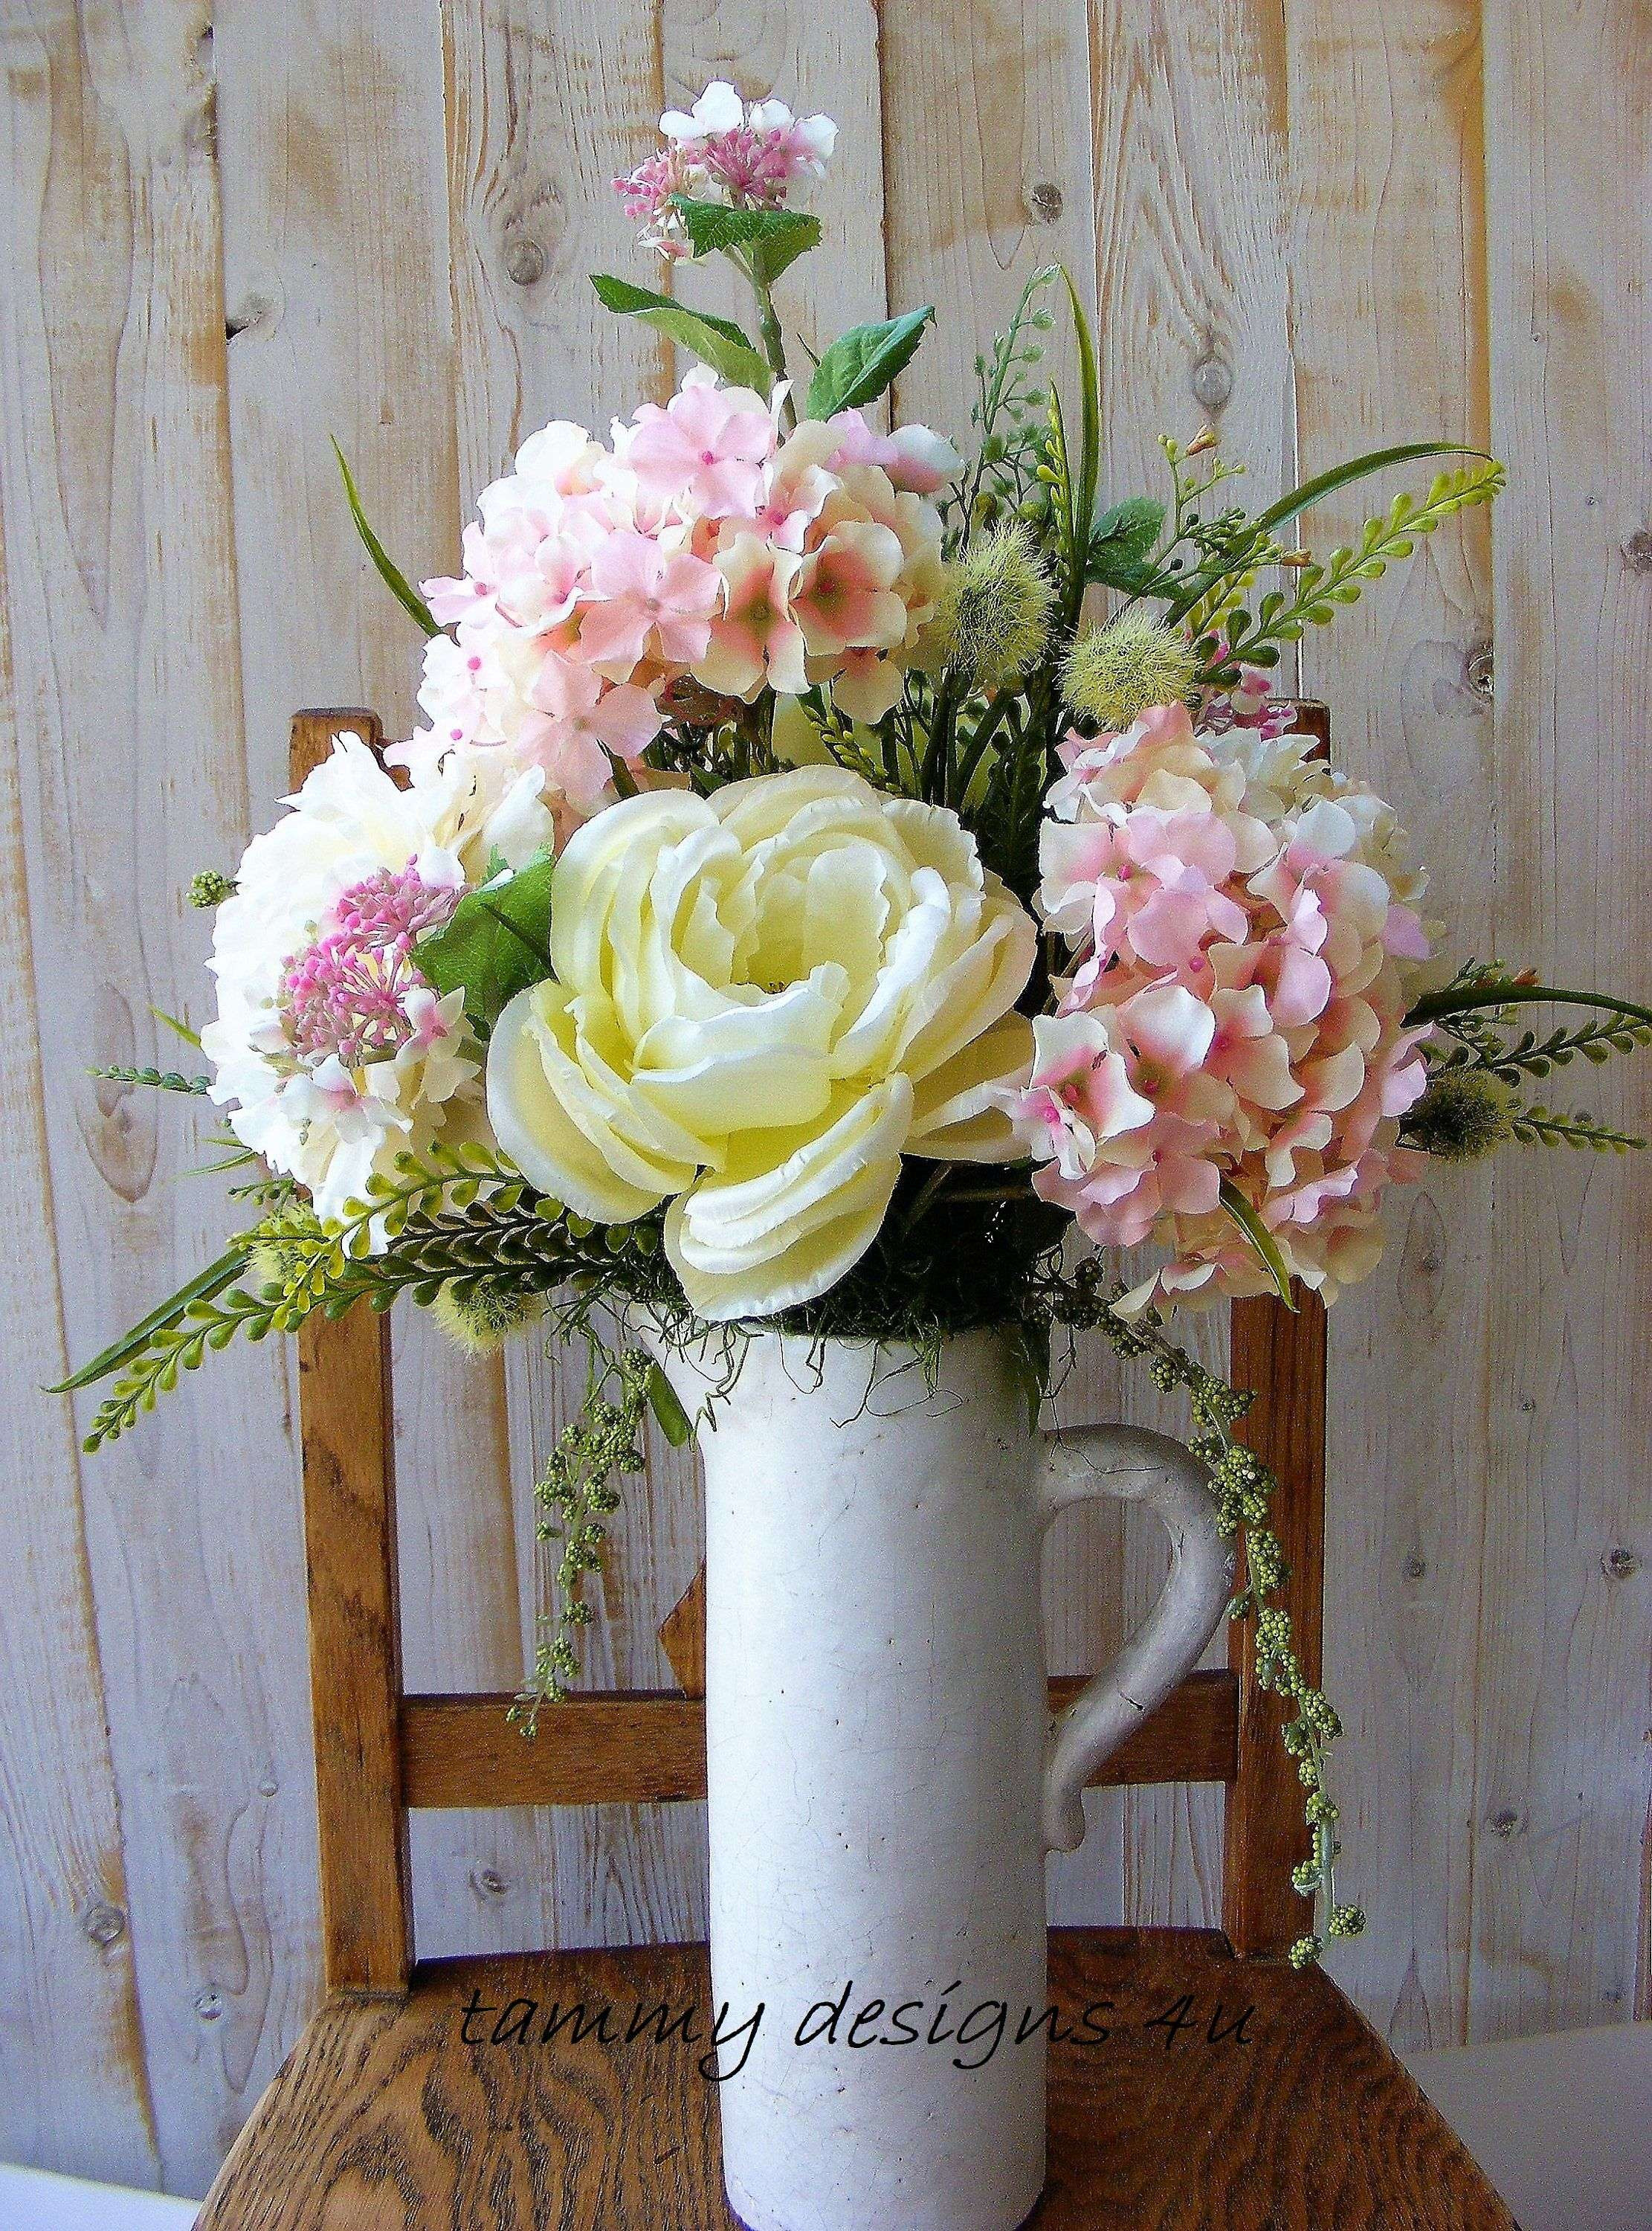 14 Lovable White Pitcher Vase 2021 free download white pitcher vase of luxury silk flower table arrangements uk floral arrangement pertaining to white pitcher silk flower arrangement light pink hydrangea cream peonies farmhouse decor cotta